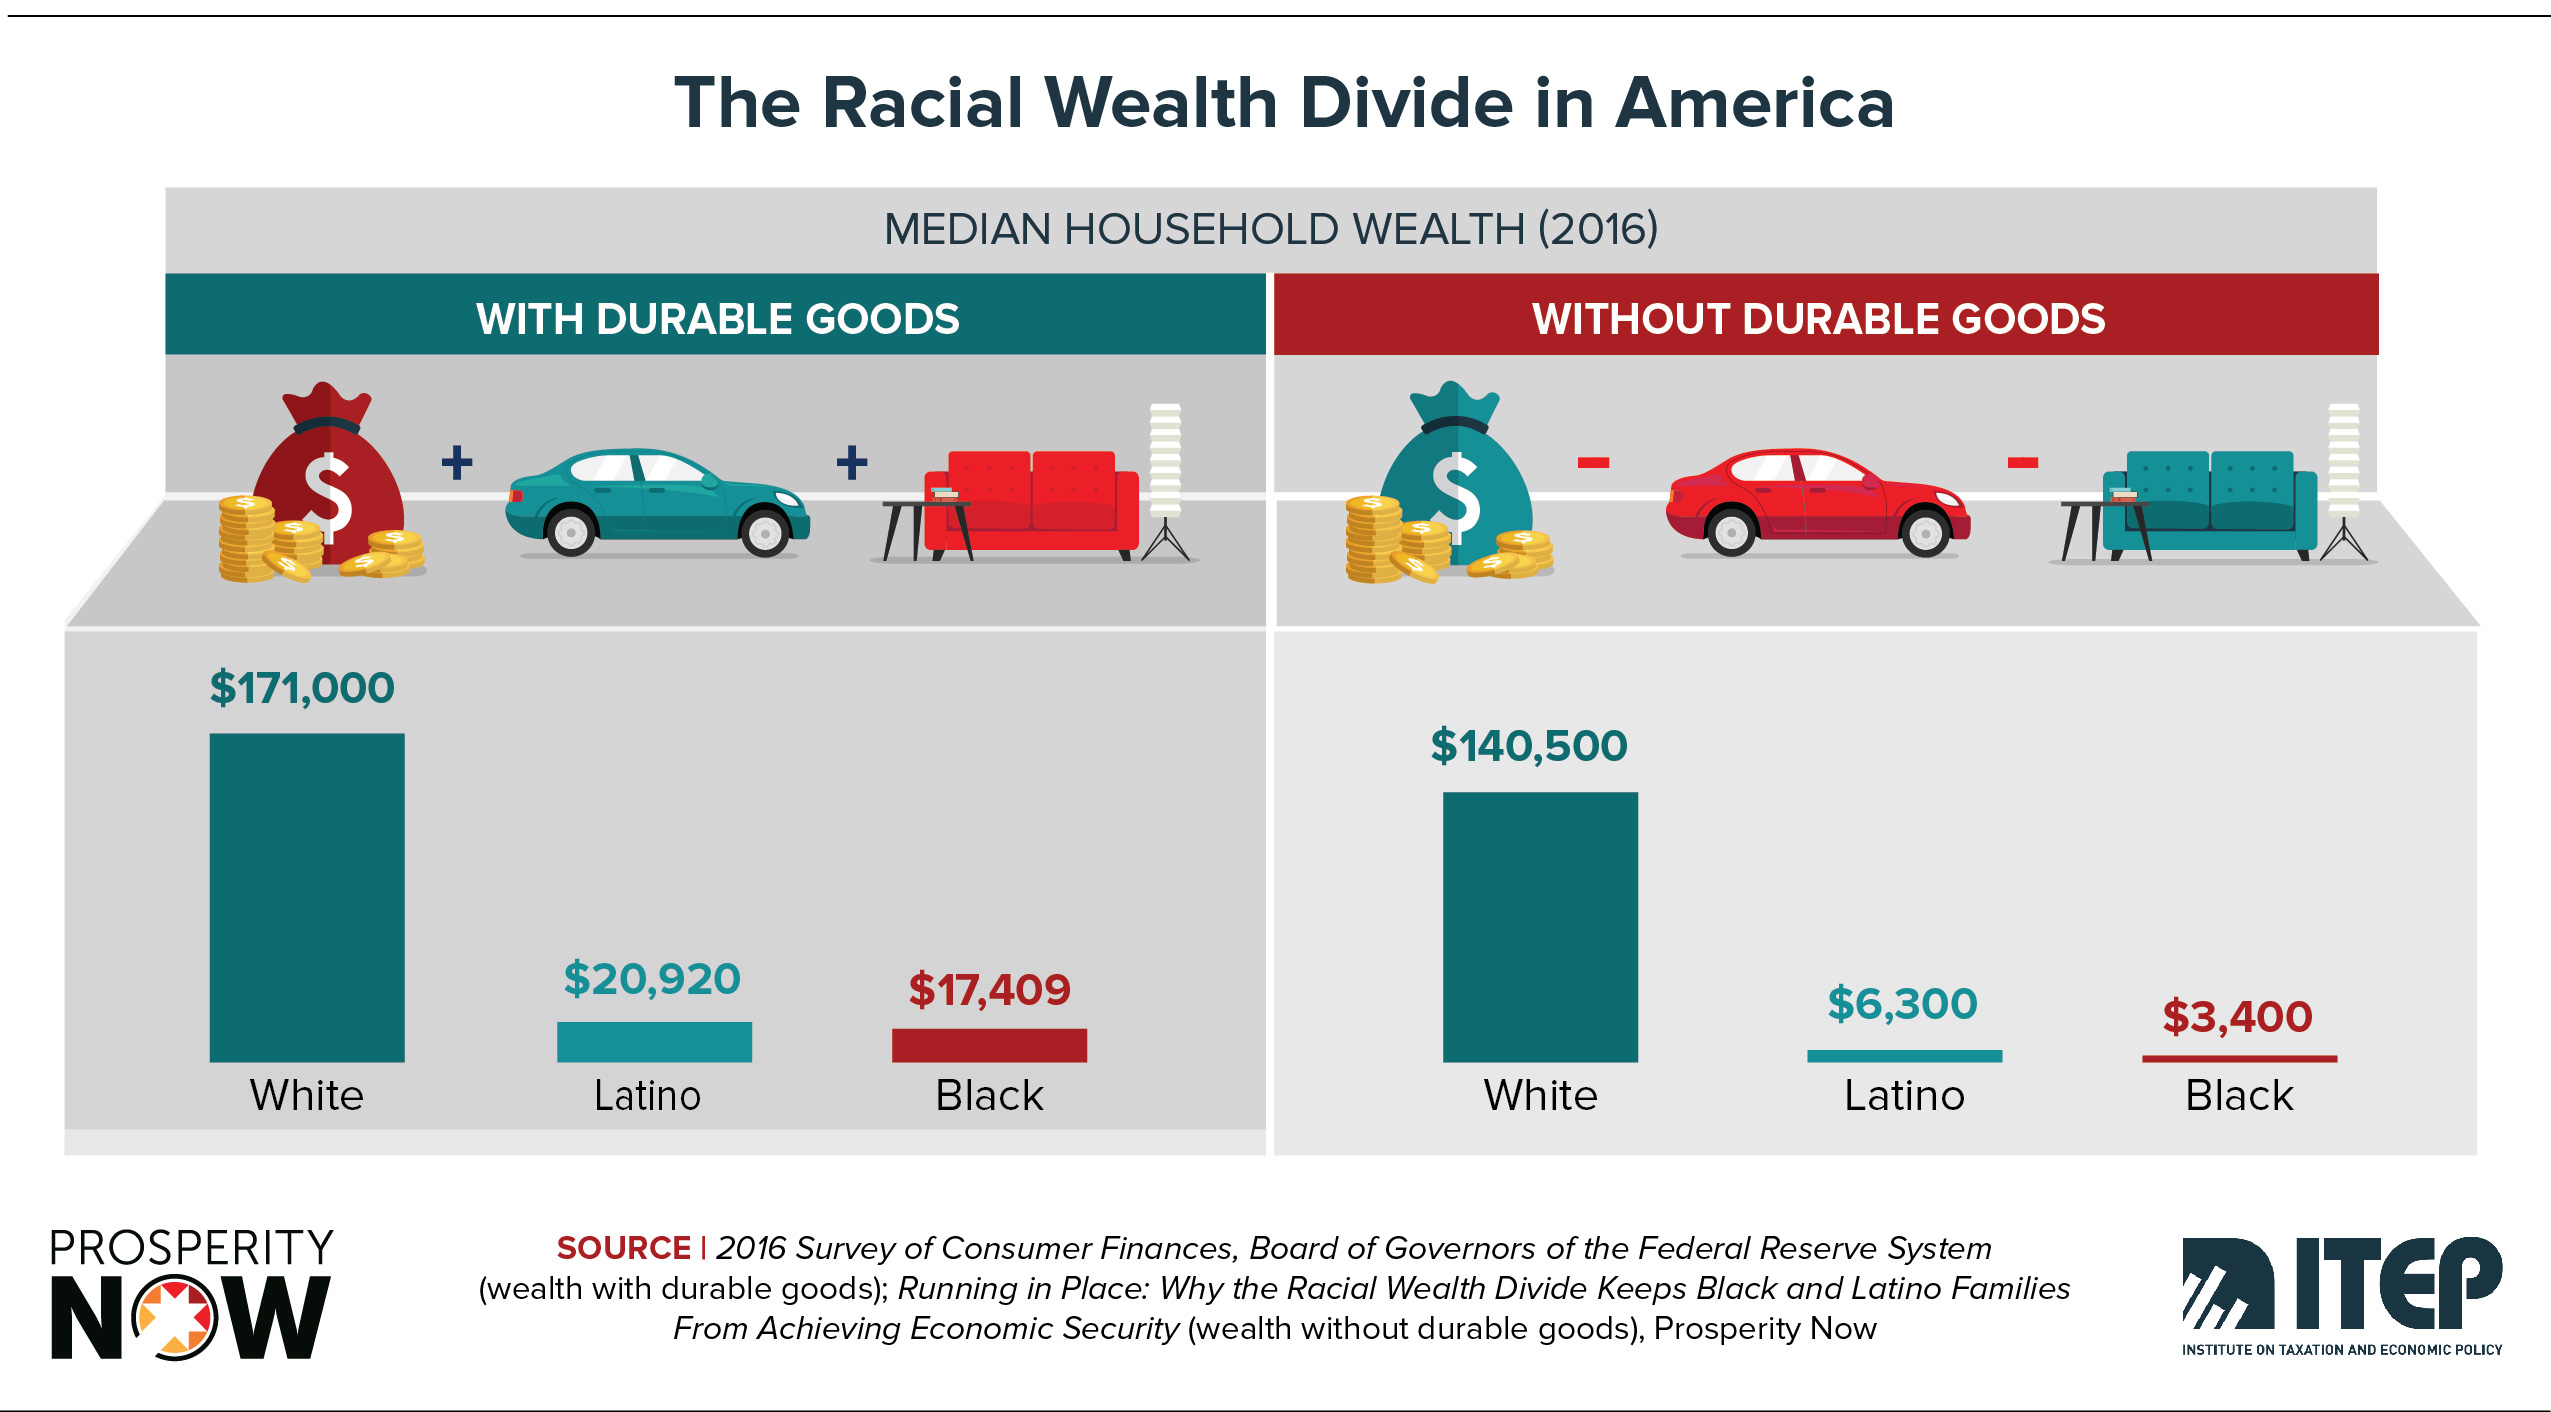 ITEP-PN-Race_Wealth_Taxes_Shareable_Graphic 2.jpg